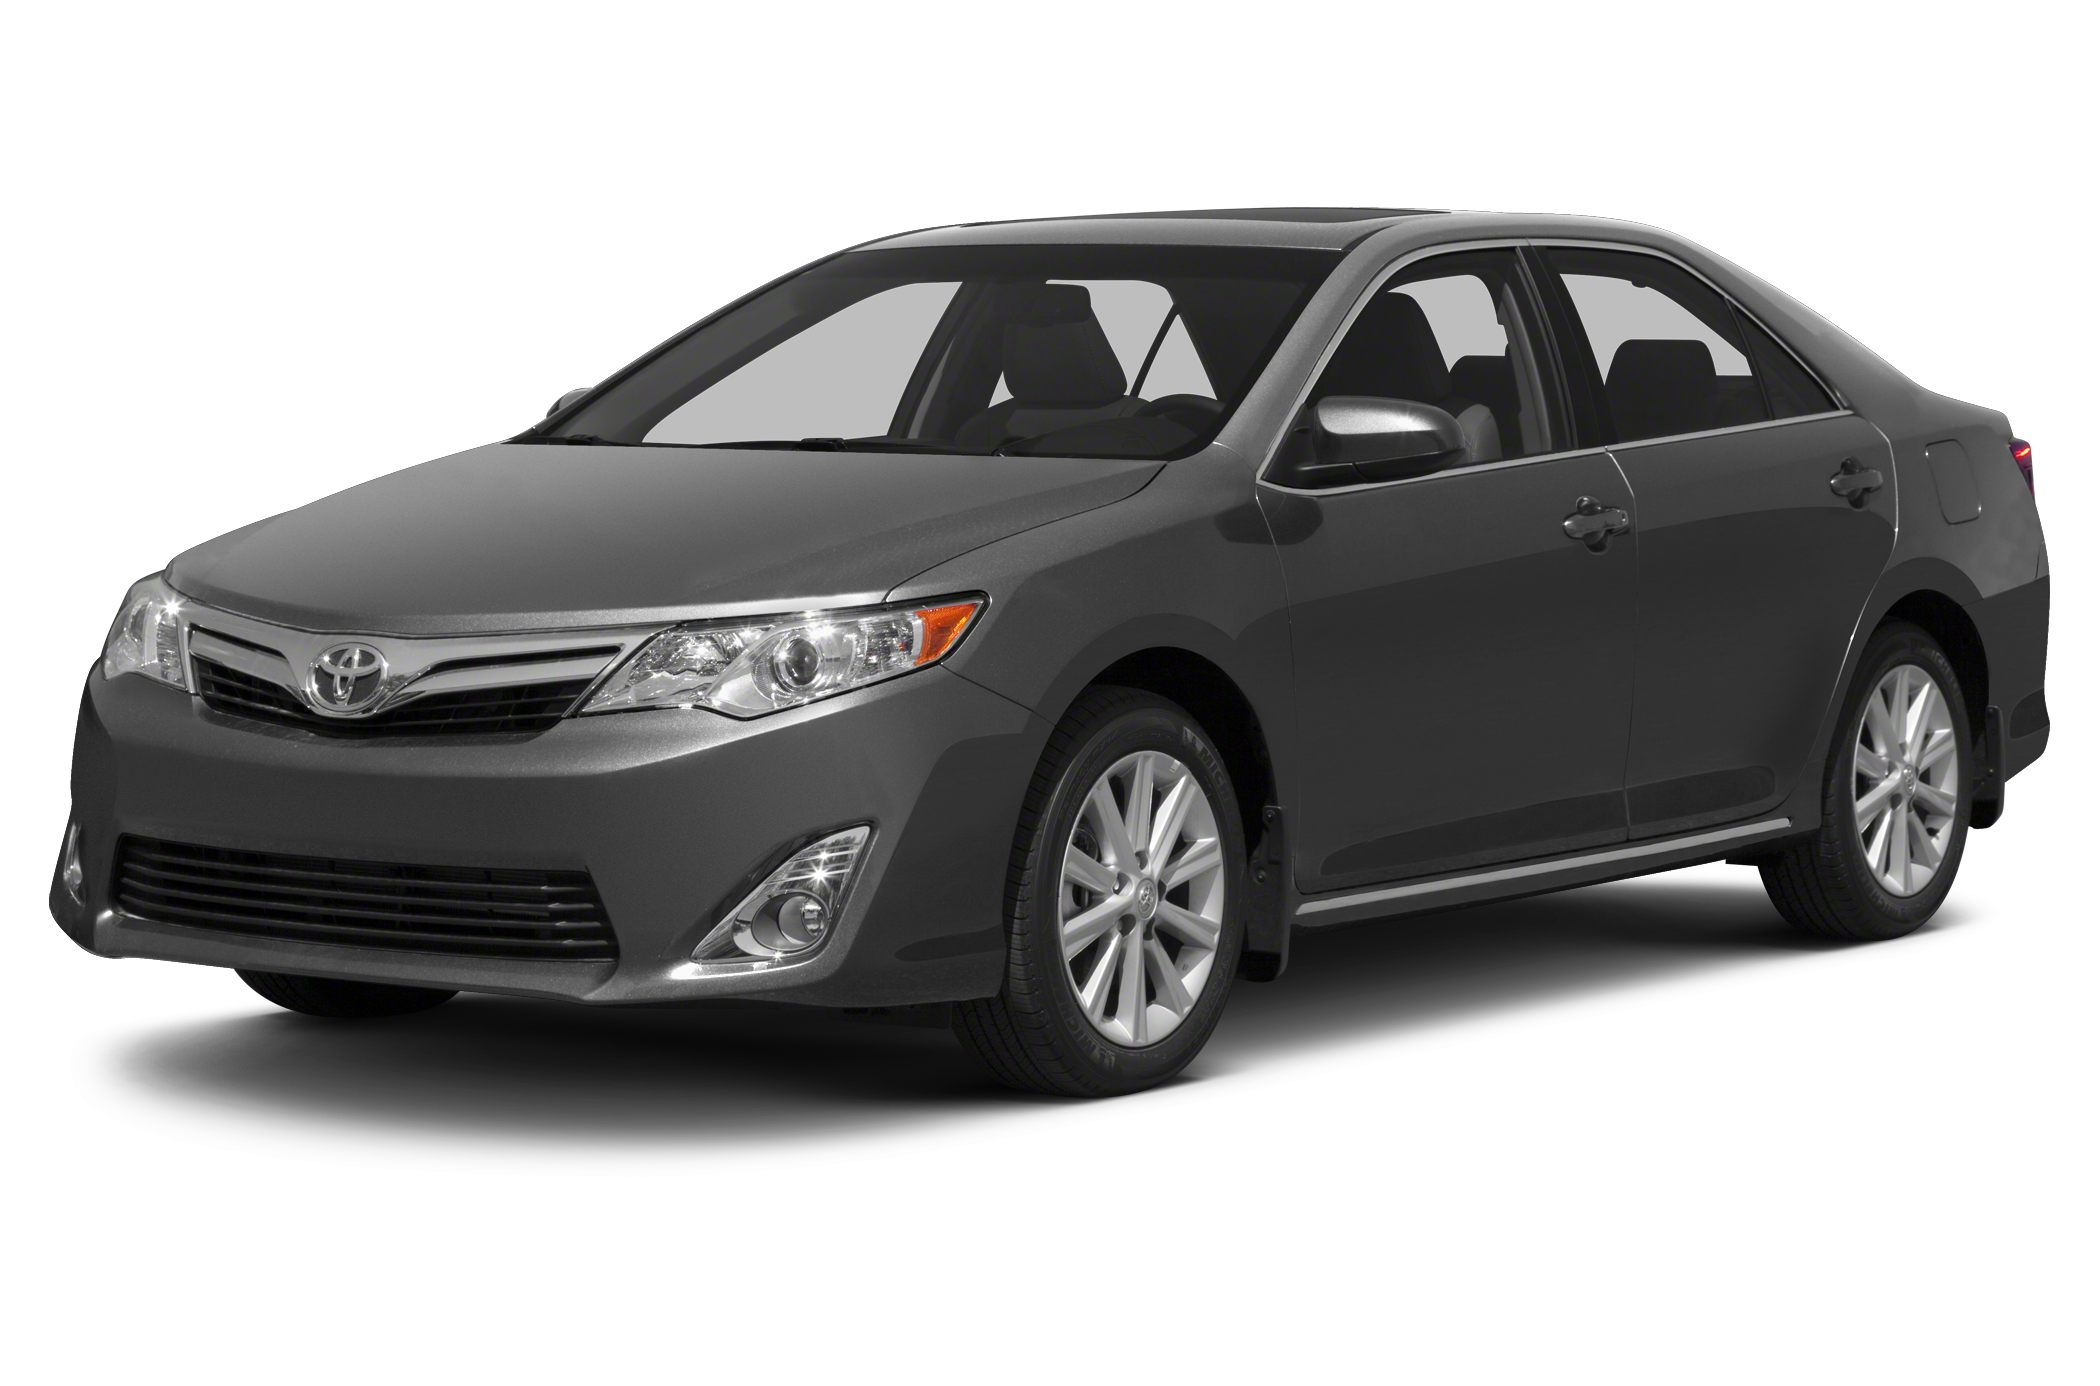 2012 Toyota Camry LE Sedan for sale in Gastonia for $16,950 with 33,084 miles.